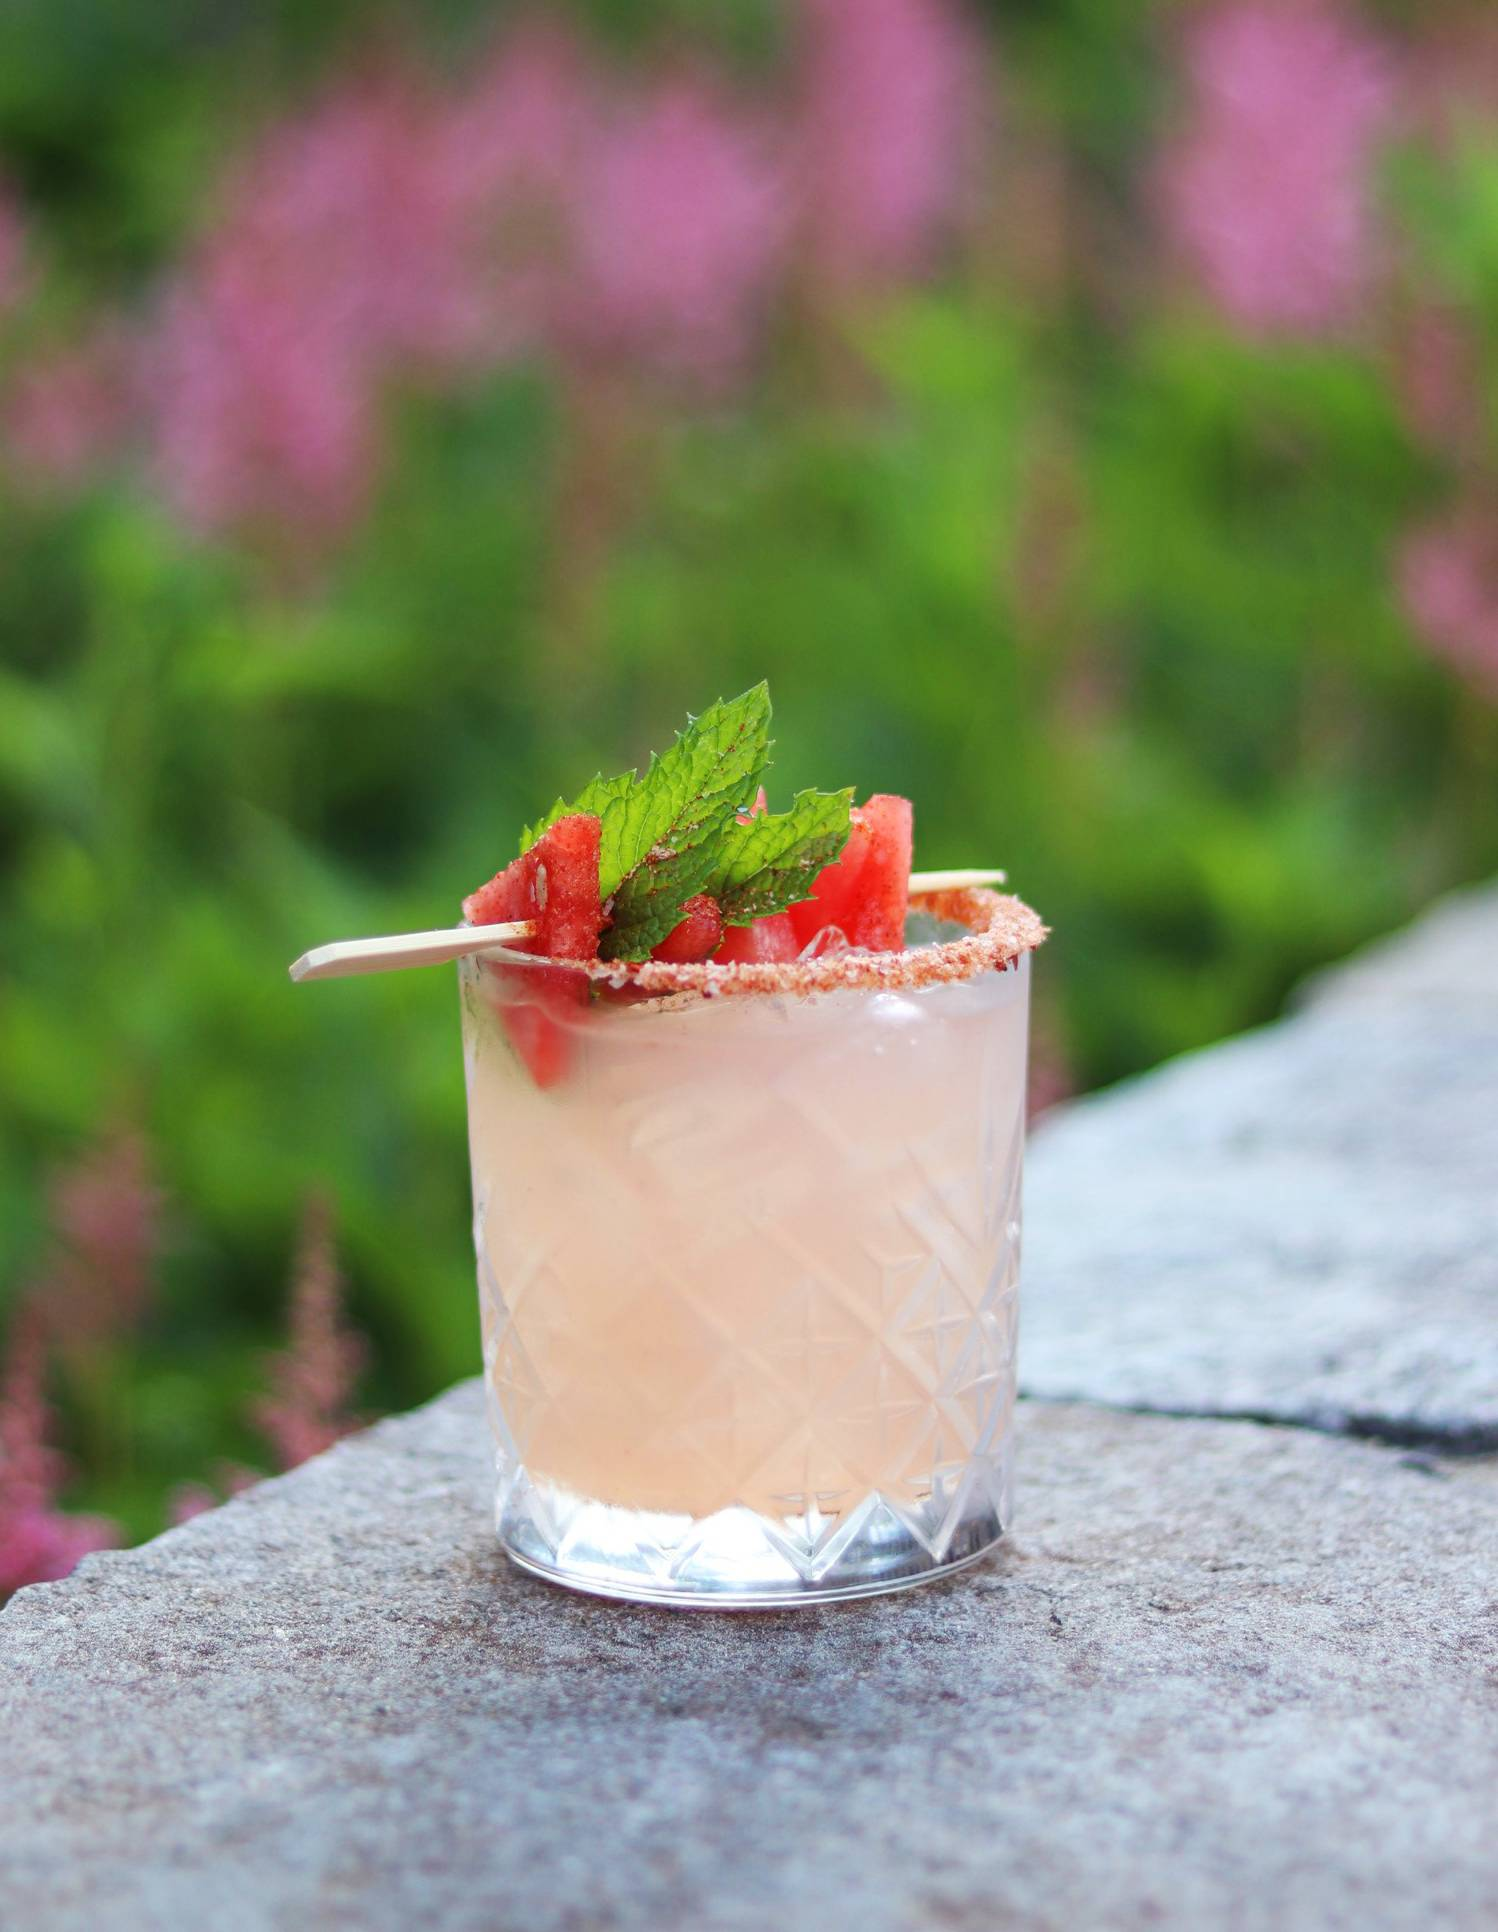 Spicy_Mezcal_Watermelon_1_3EB6B.jpg